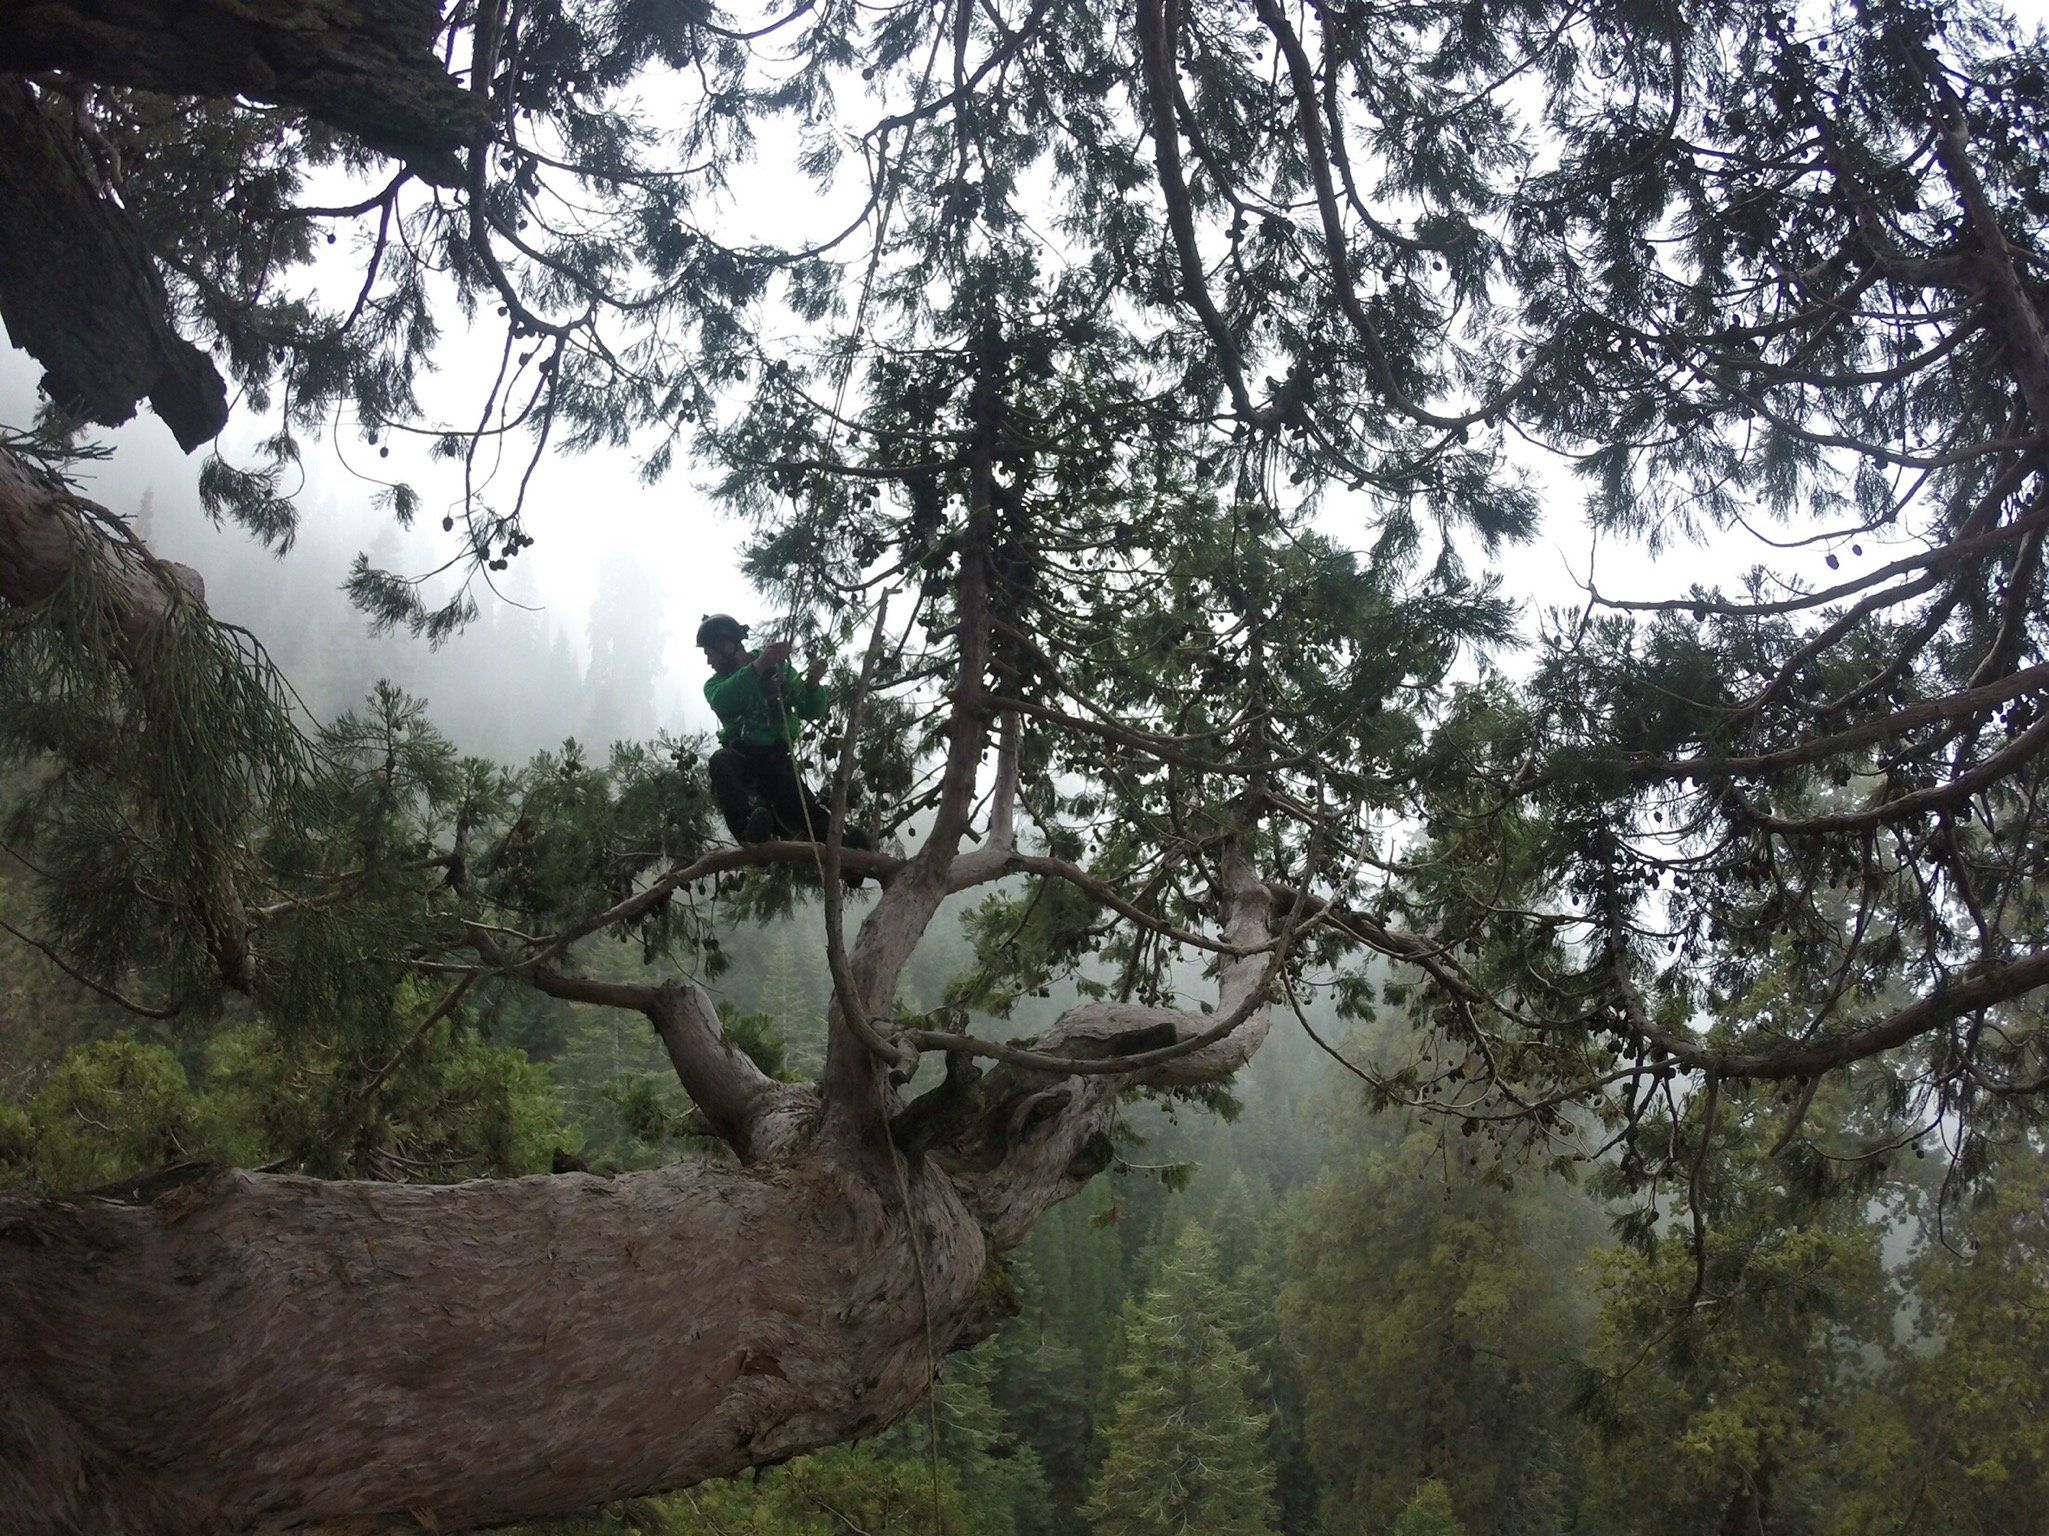 Jake Milarch collects clippings from the top of a sequoia.